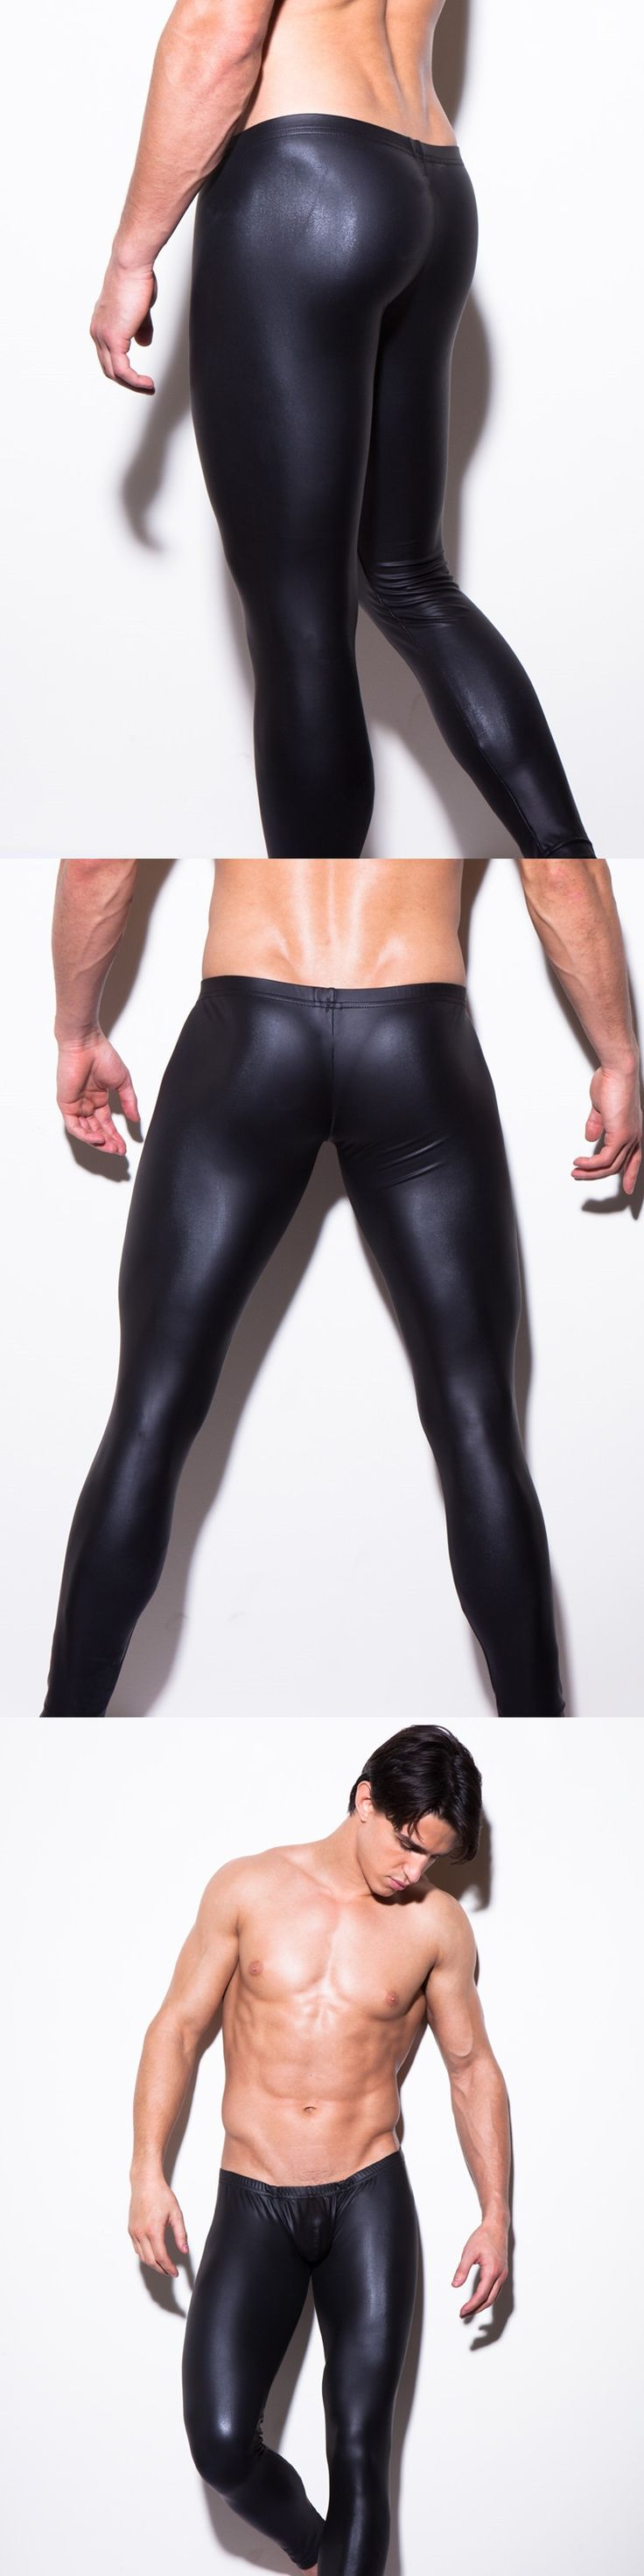 Sexy Men U Pouch Faux Leather Shiny Leggings Low-rise Tight  U Convex Pouch Gay Wear Erotic lingerie Costume